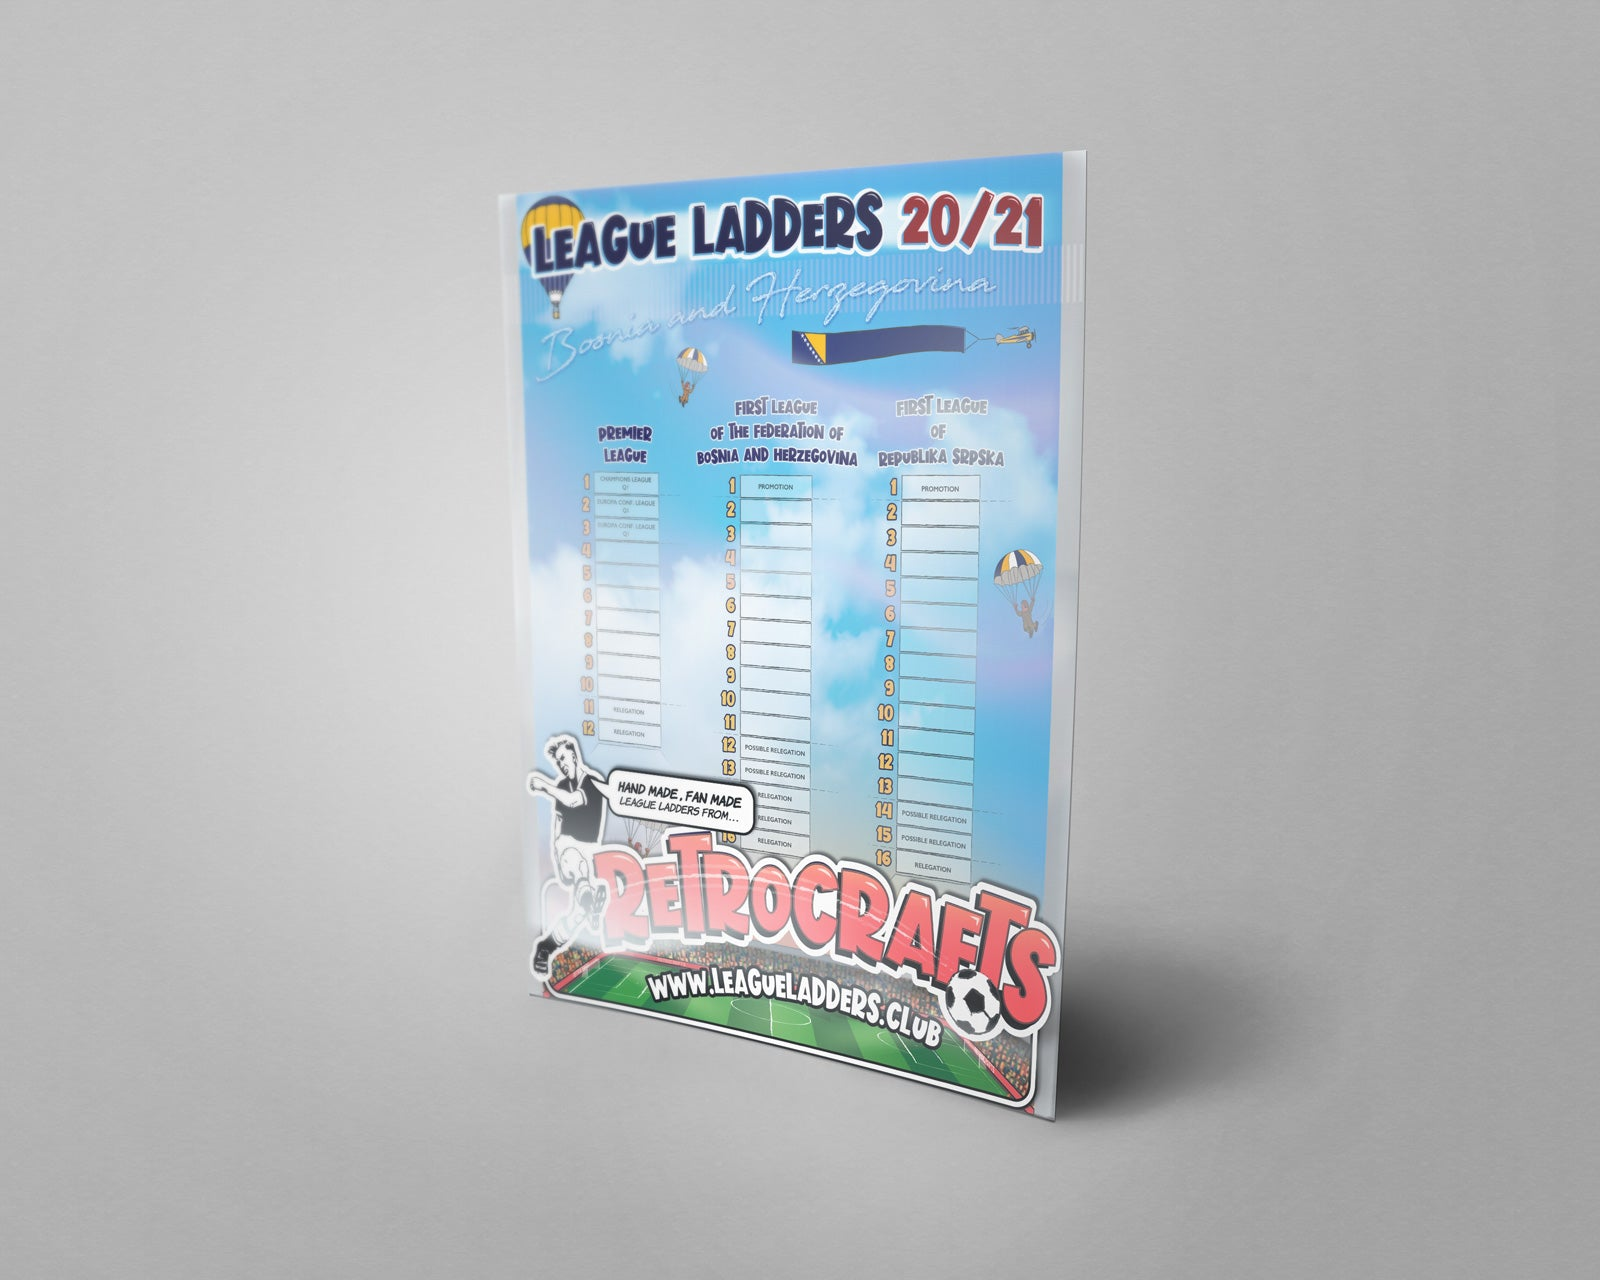 Bosnia and Herzegovina Football League Tiers 1 & 2 2020/21 Season League Ladders